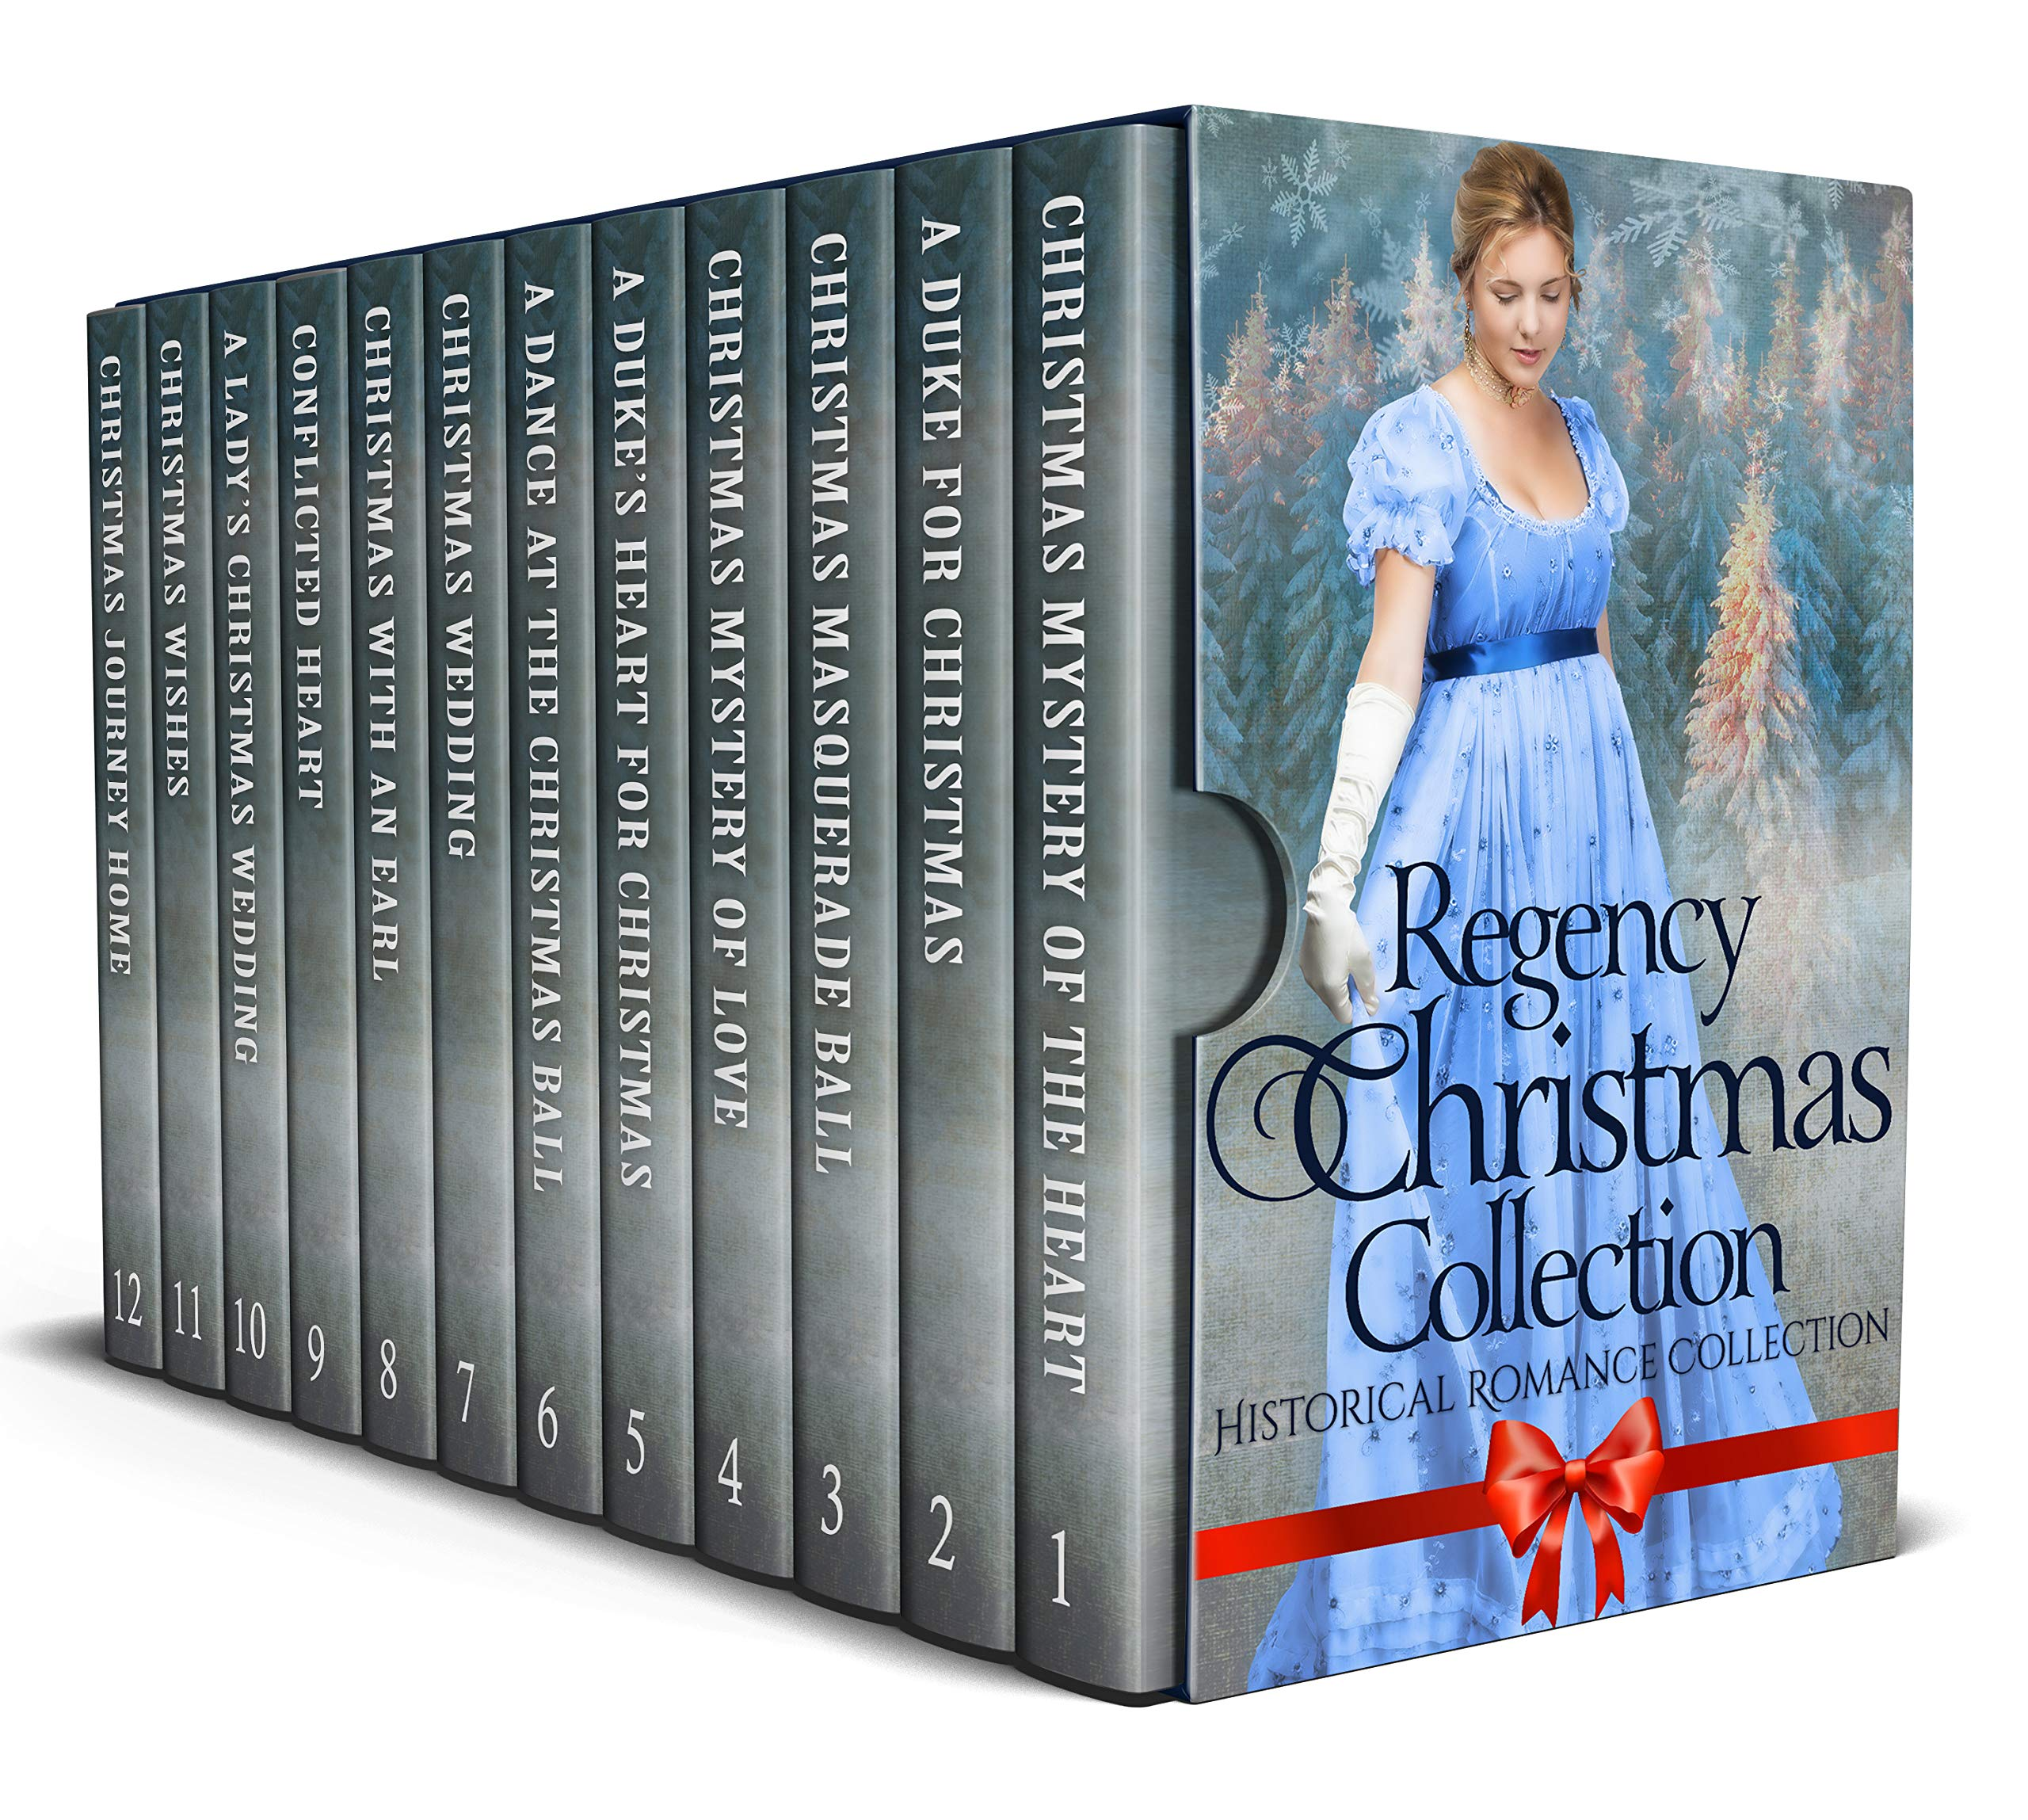 Regency Christmas Collection  Historical Romance Collection  English Edition